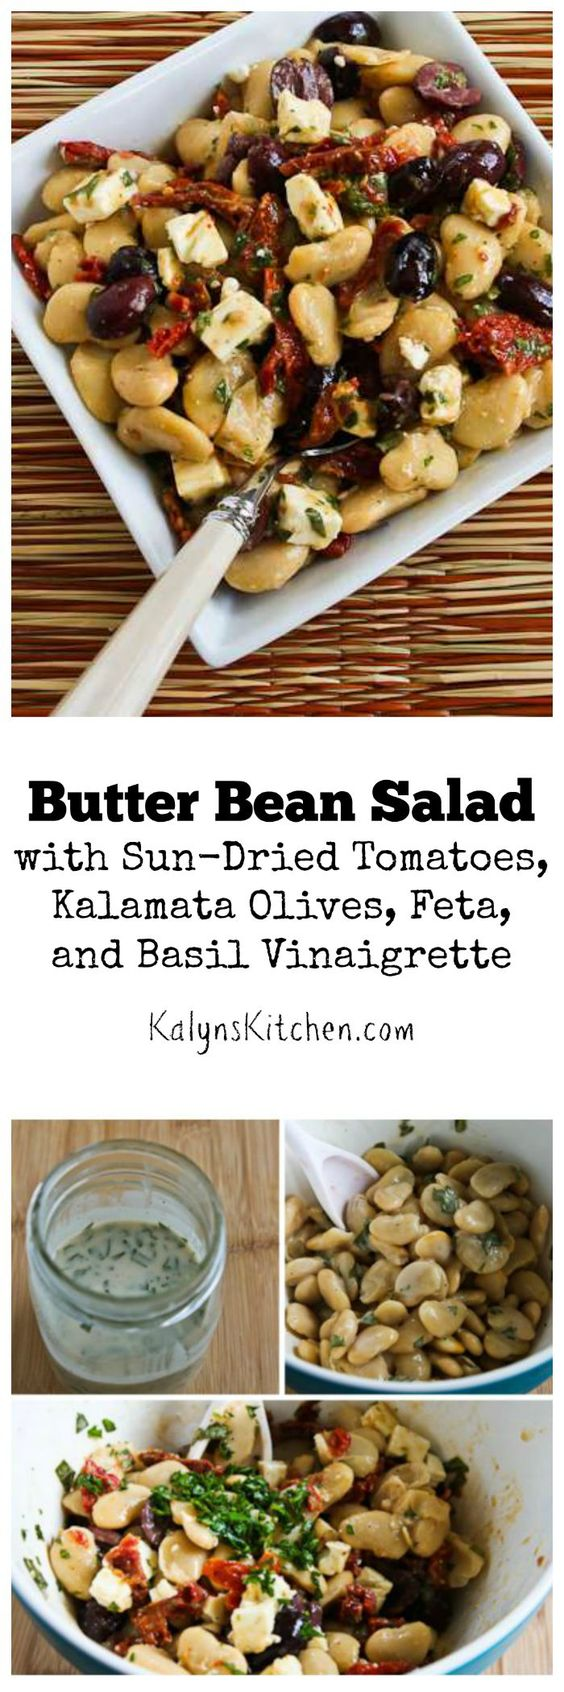 This Butter Bean Salad with Sun-Dried Tomatoes, Kalamata Olives, Feta, and…